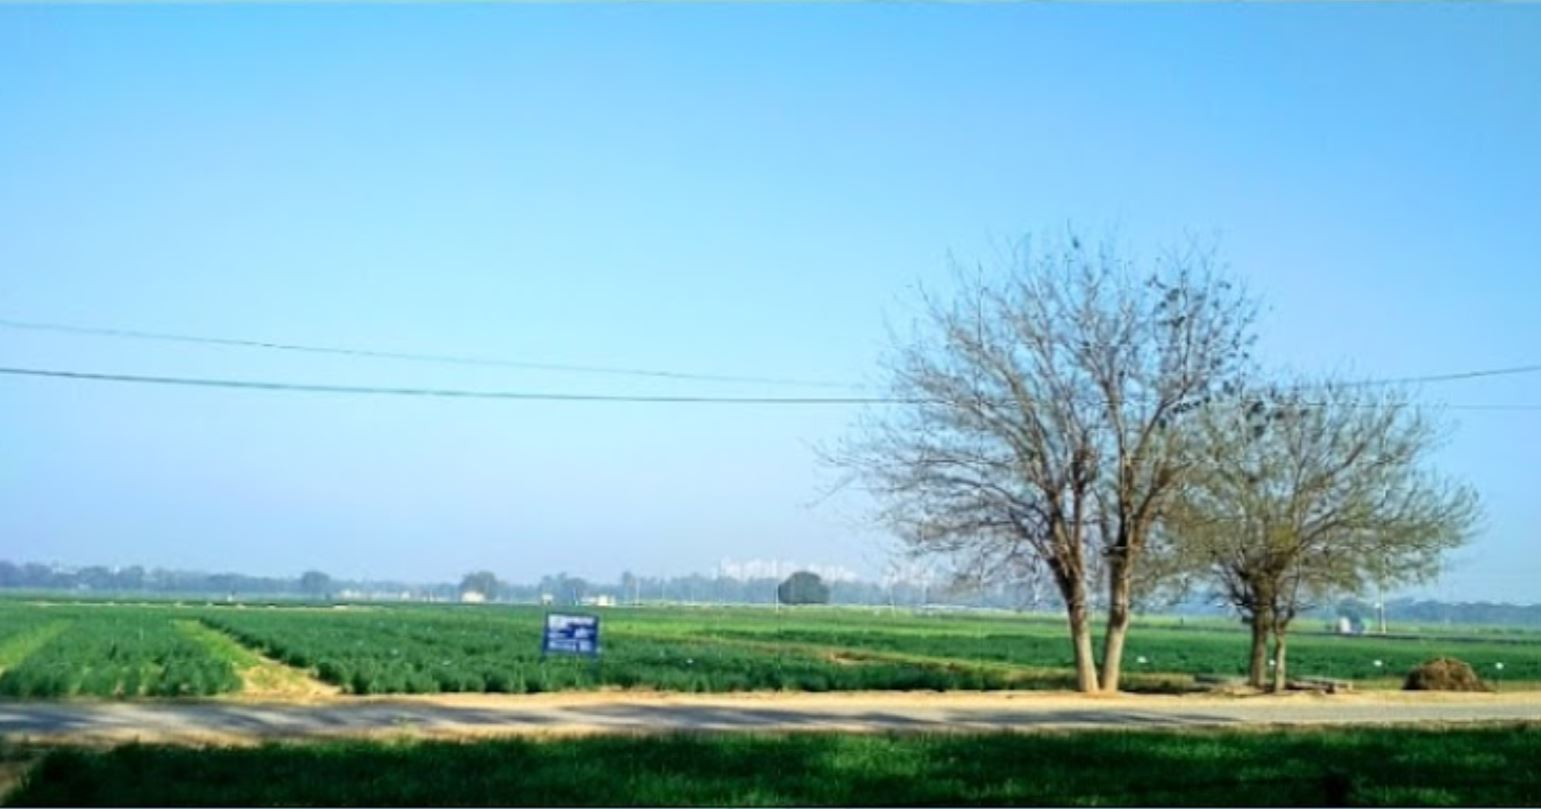 Climate change hurting India's agricultural output – Govt